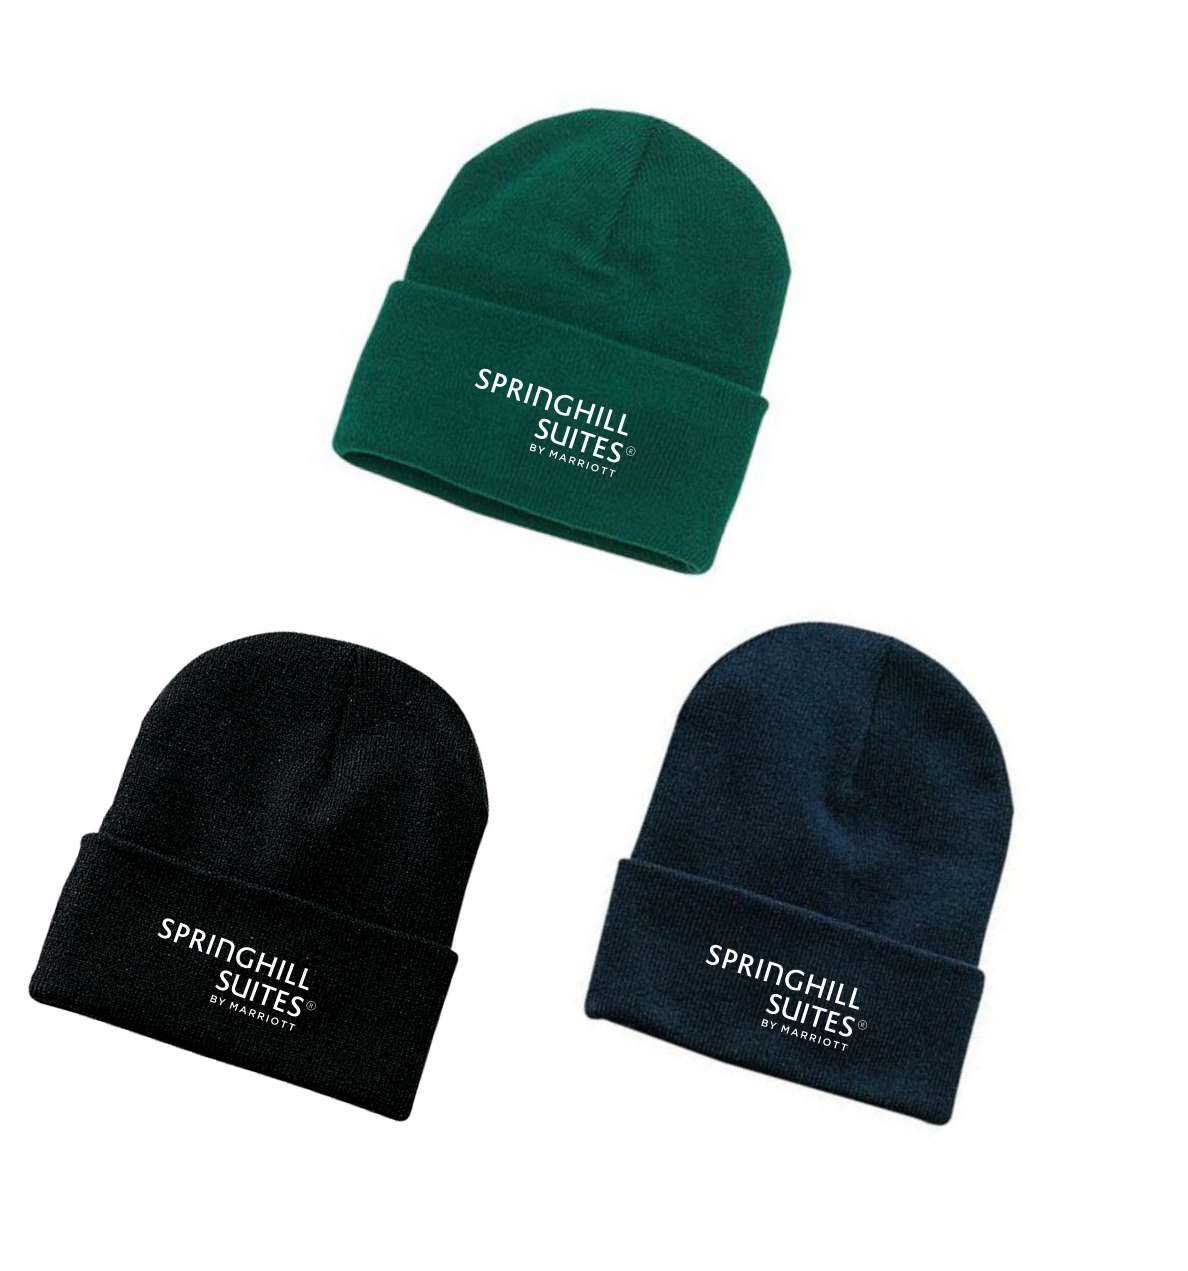 Ski Hats, Knitted. Green, Black or Navy Blue - 1 Size Fits All - 100% Acrylic